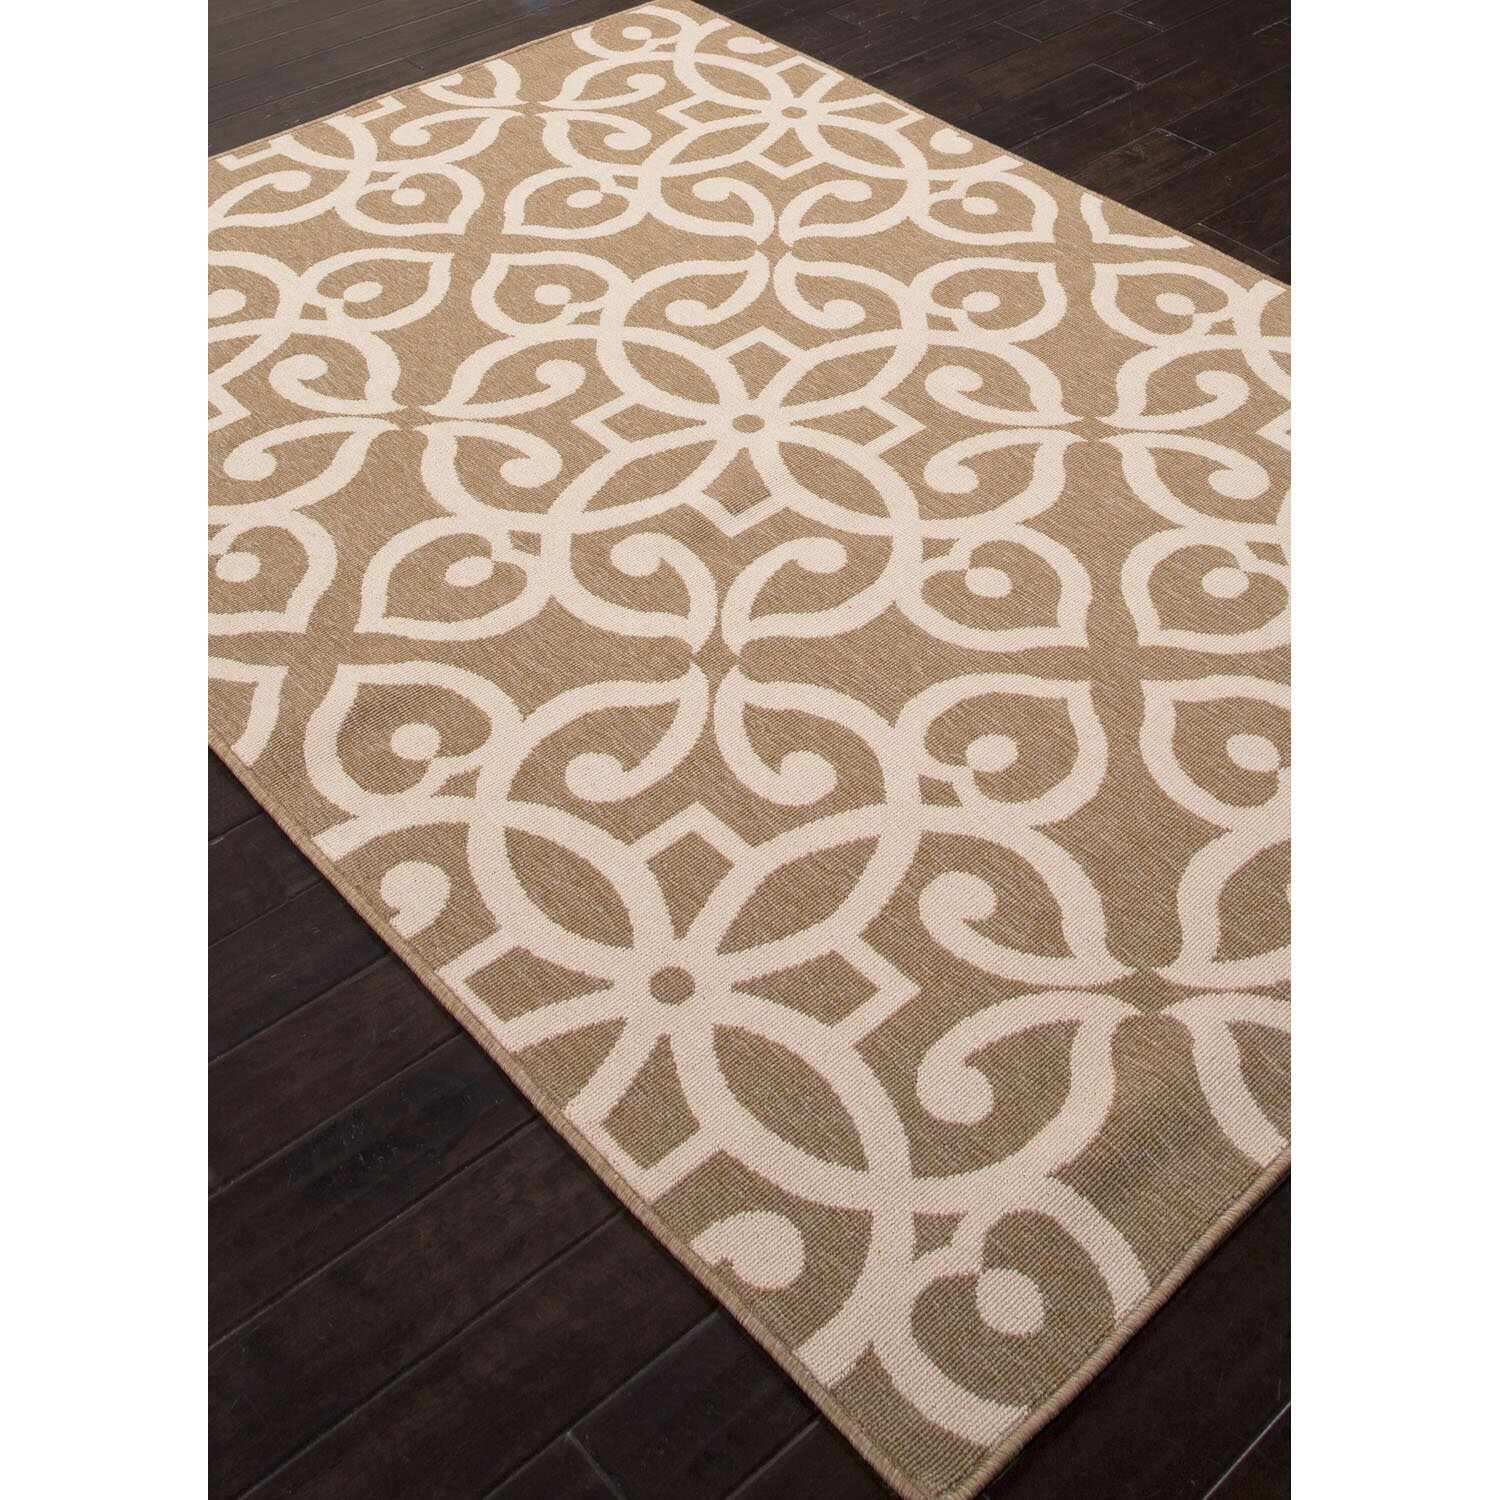 Jaipurliving bloom brown taupe indoor outdoor area rug for Living room rugs 9x12